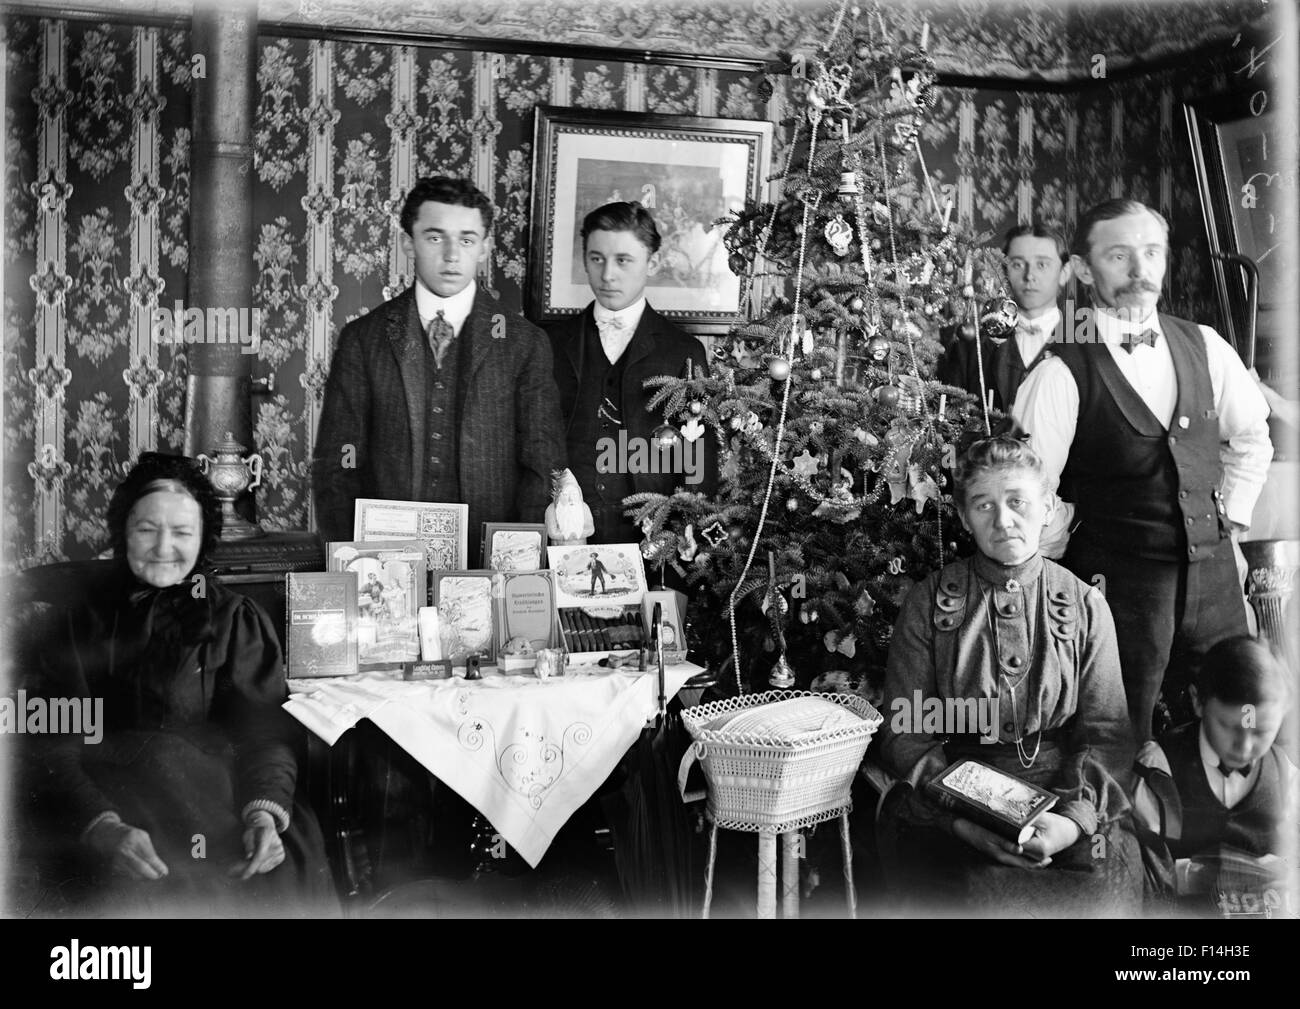 1890 1890s TURN OF CENTURY GROUP PORTRAIT FAMILY THREE GENERATIONS POSING  BY CHRISTMAS TREE GIFTS ON TABLE